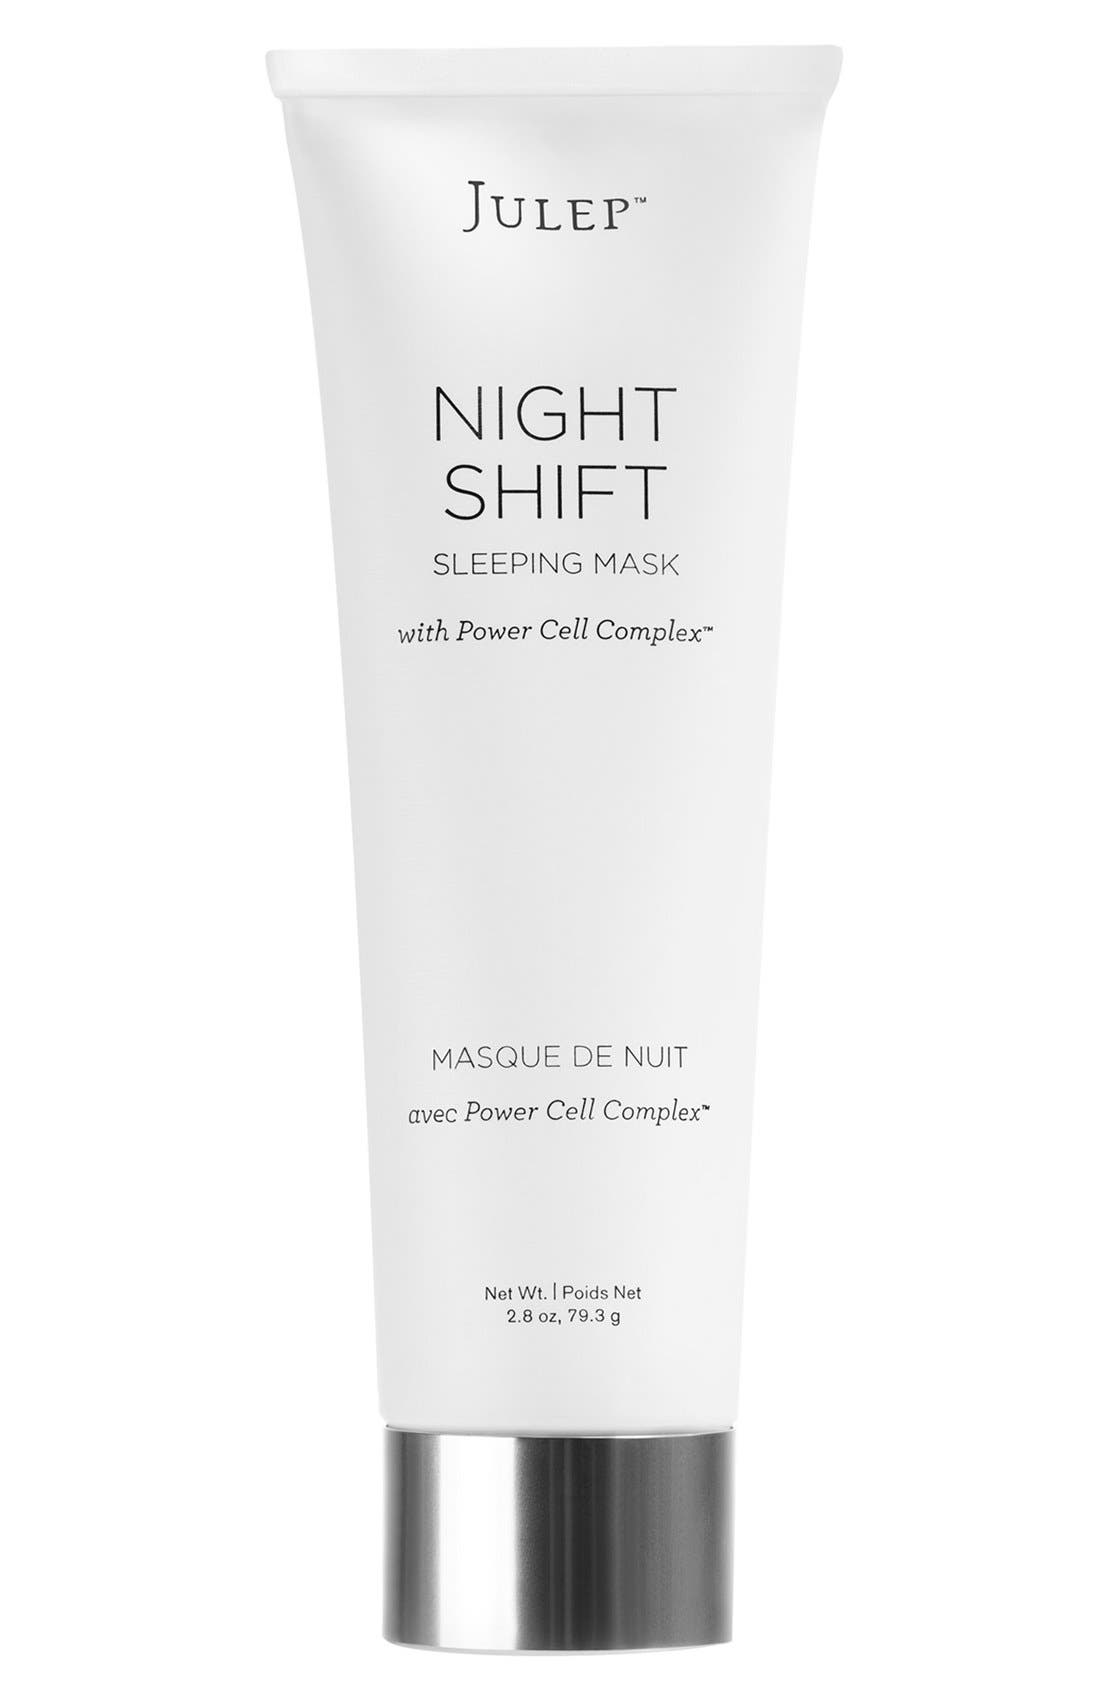 Julep™ Night Shift Sleeping Mask